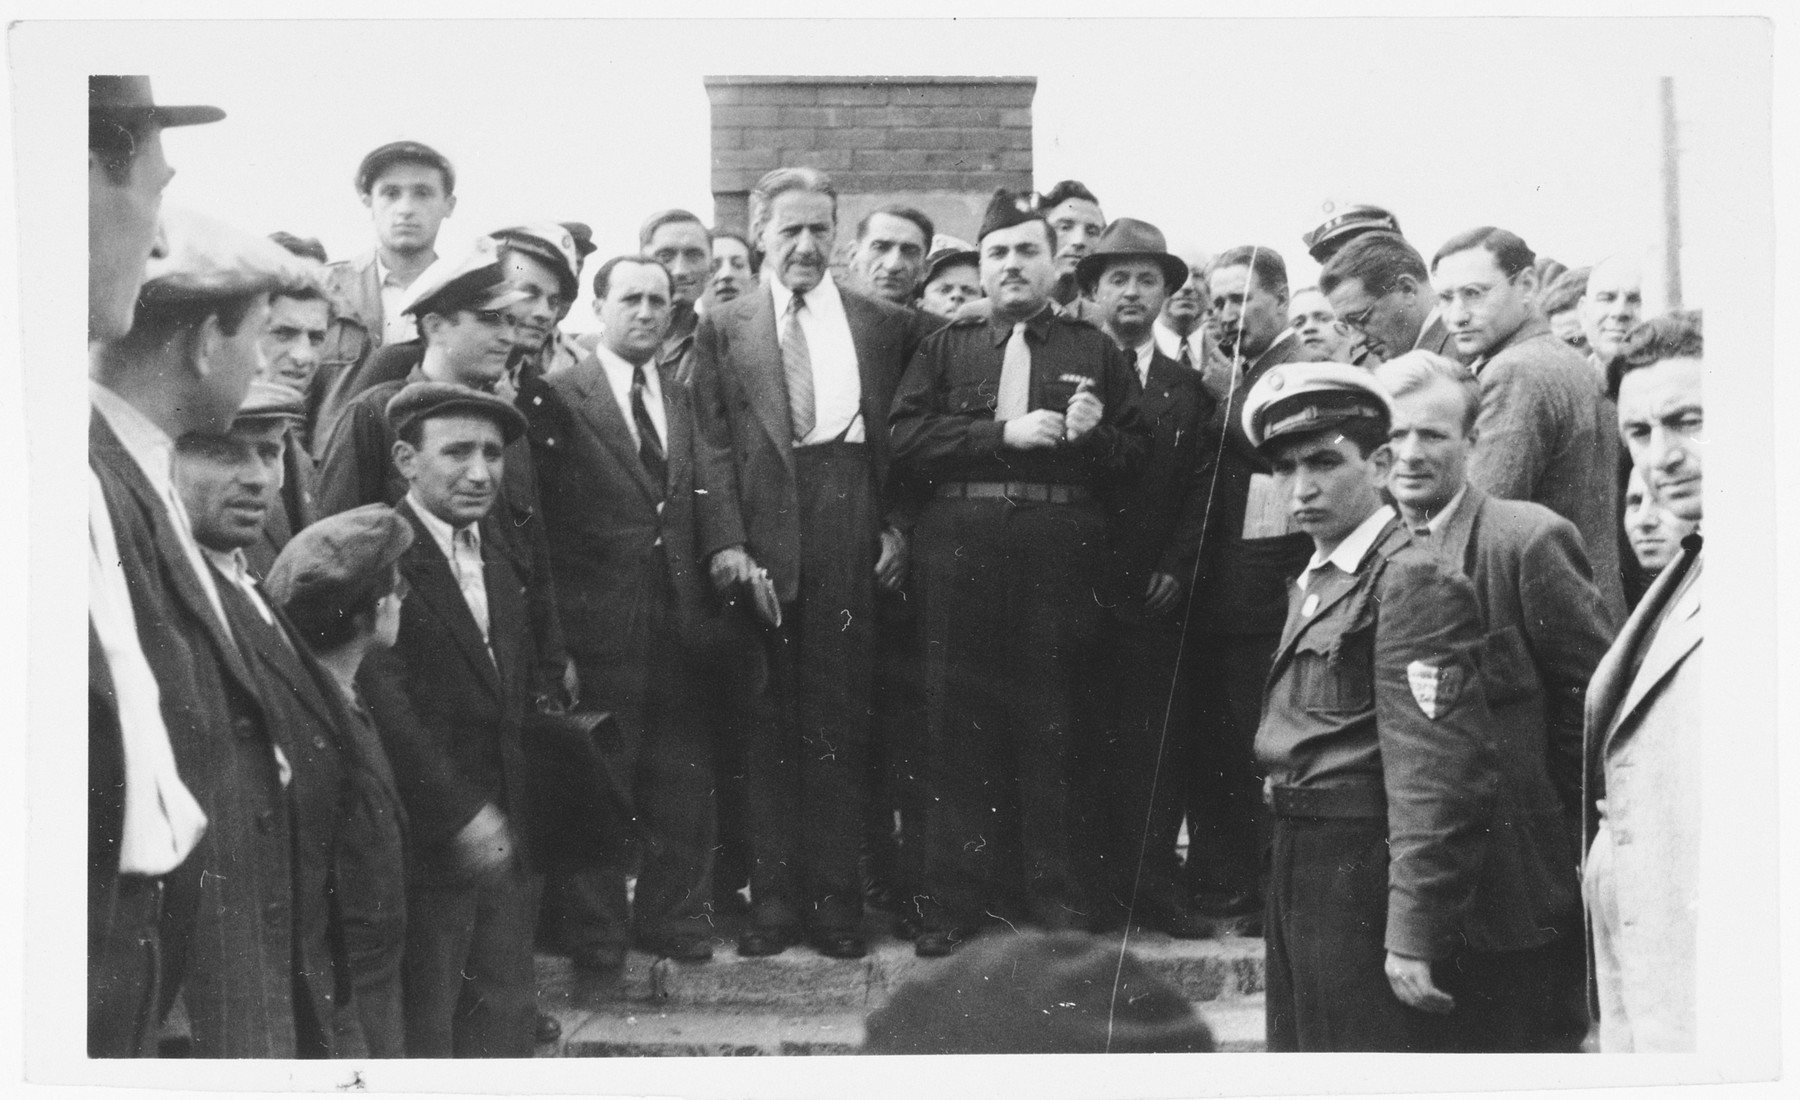 Rabbi Stephen Wise visits a Holocaust memorial at the Zeilsheim displaced persons' camp.